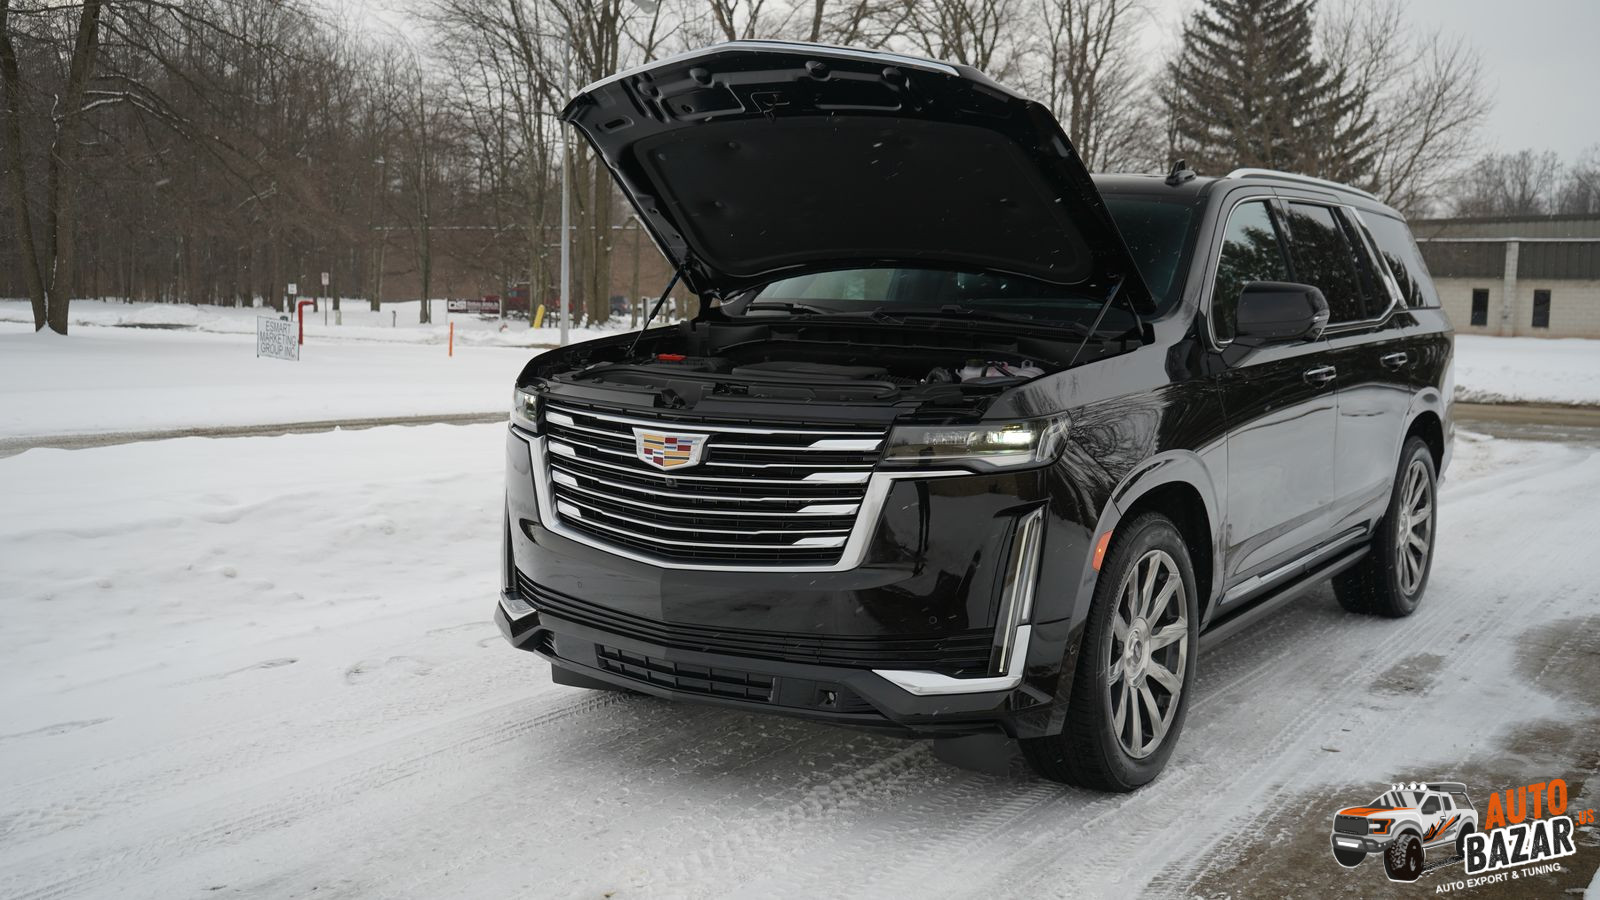 /storage/inventories/1103/2021 Cadillac Escalade 1103 (9).JPG